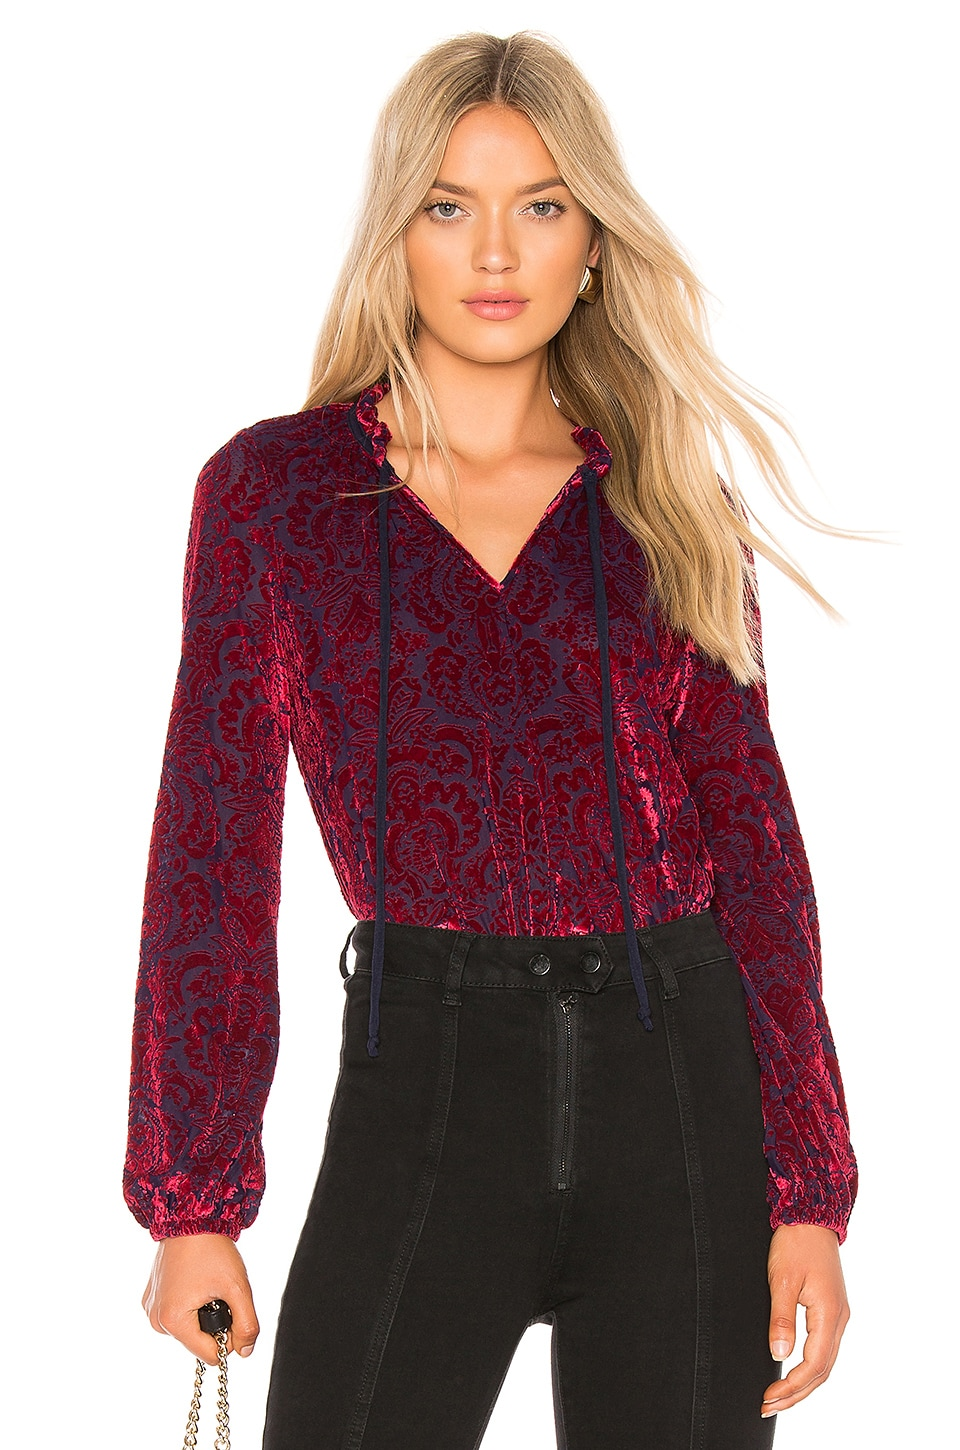 LA Made Stevie Velvet Blouse in Red & Midnight